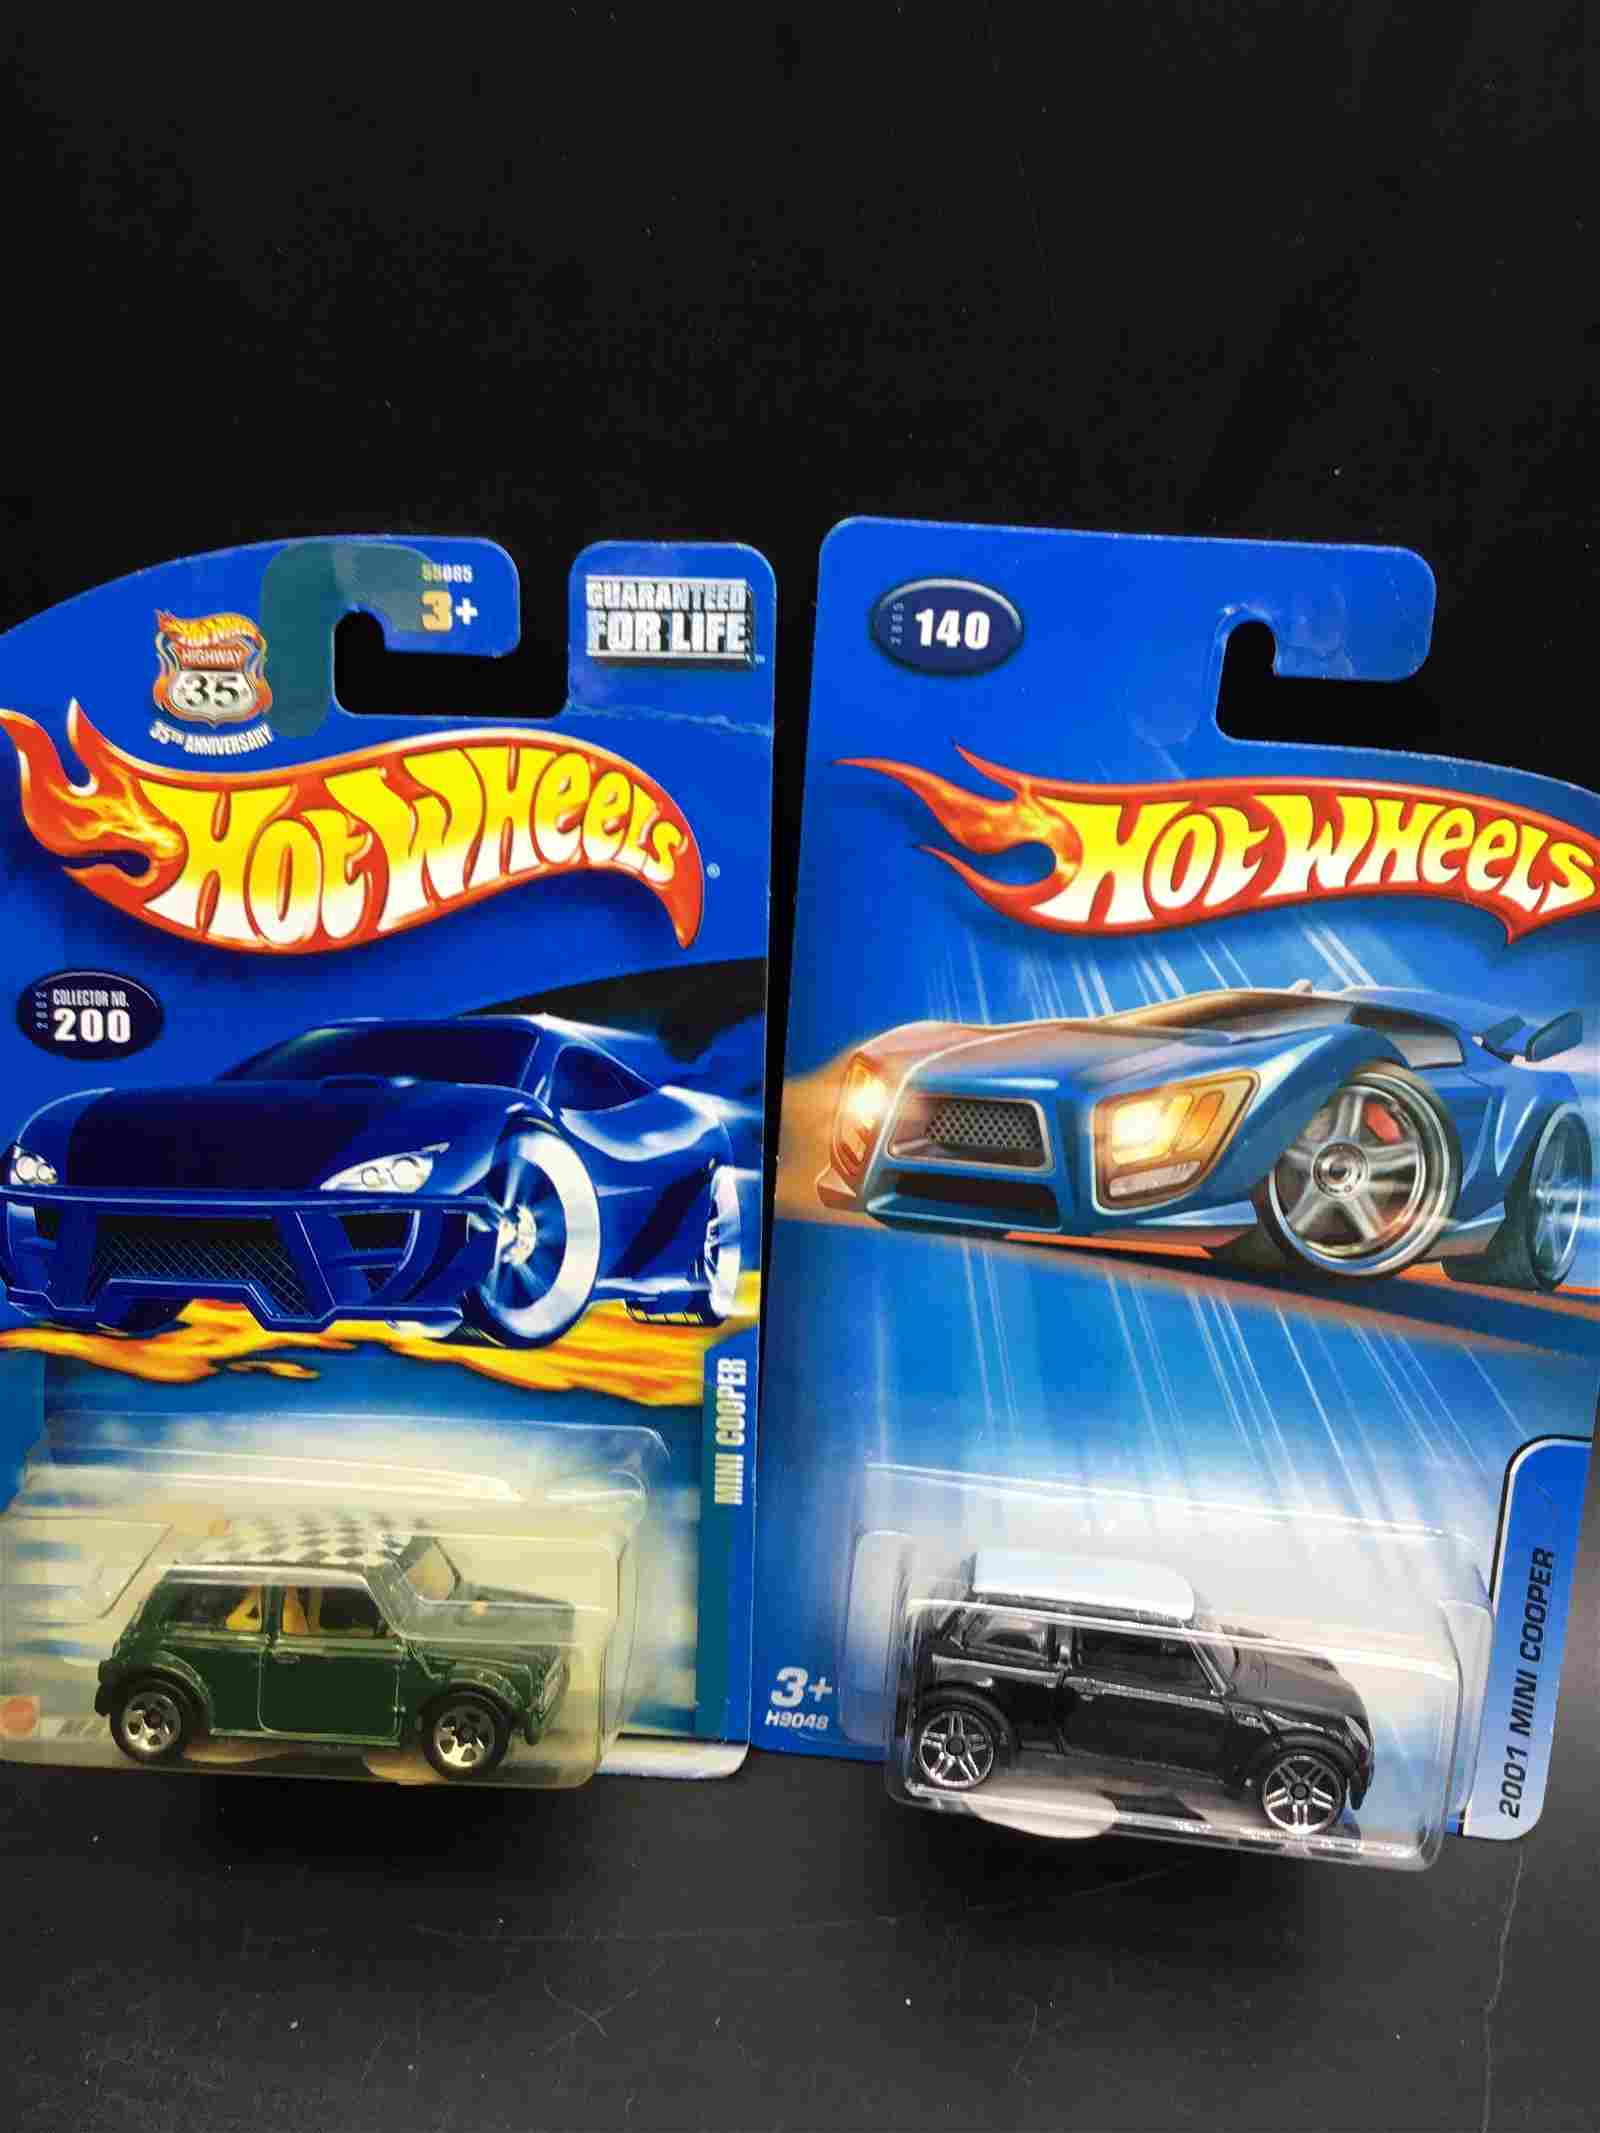 Two sets of Hot Wheels Mini Coopers